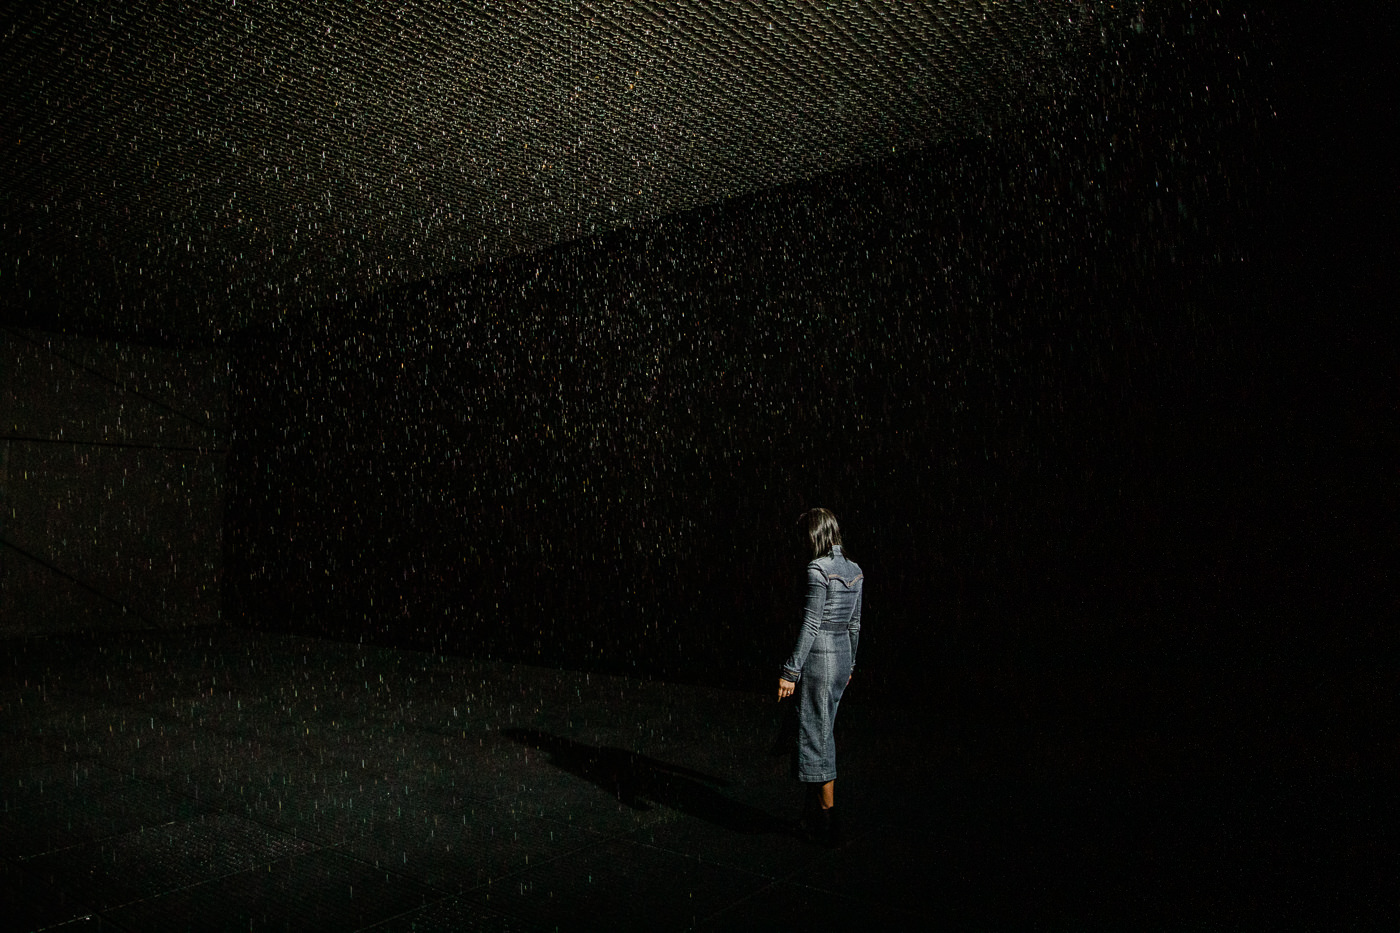 rain room by jackalope